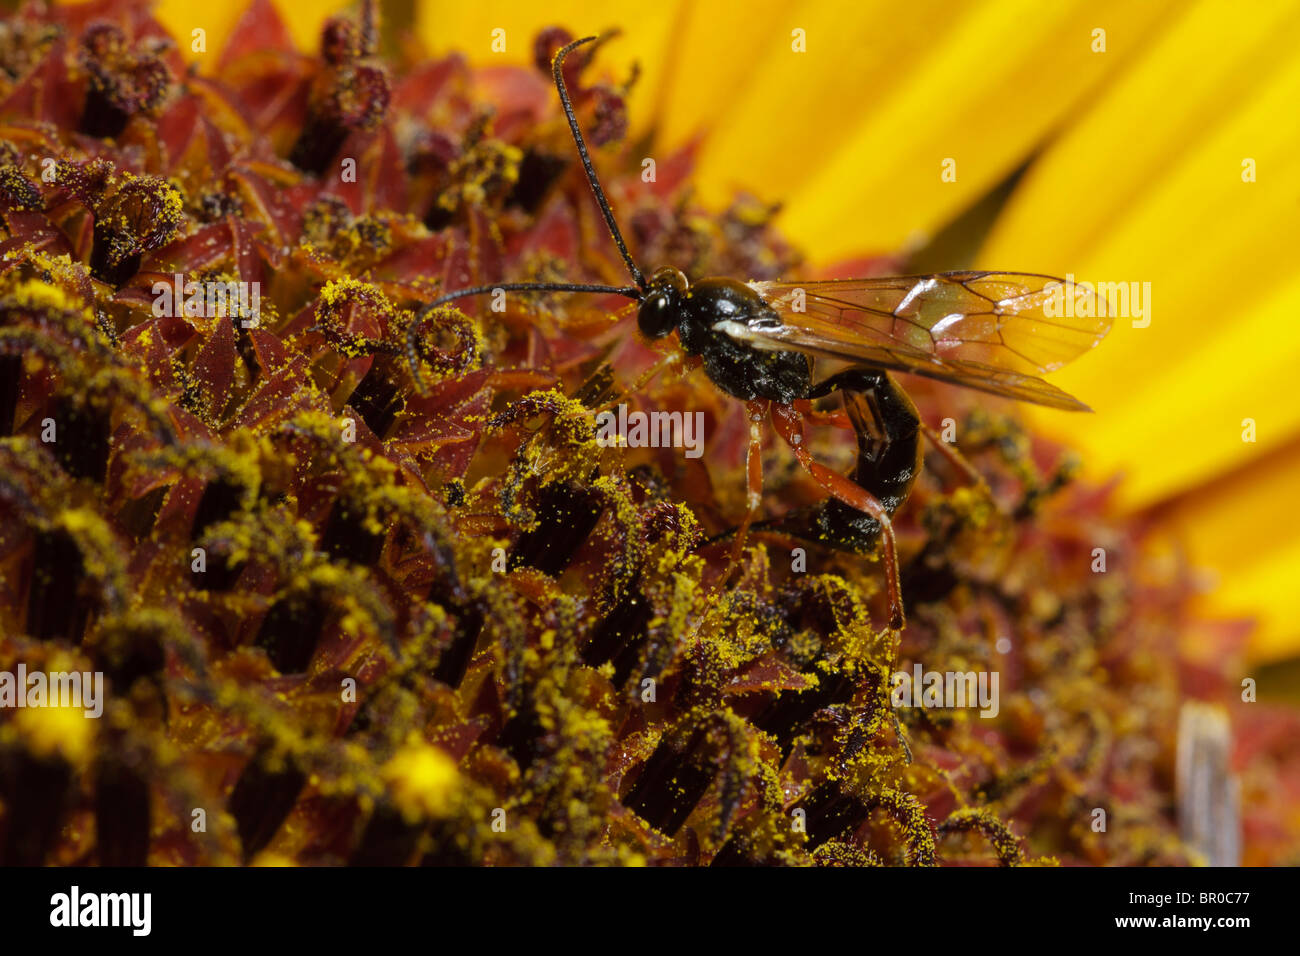 An ichneumon wasp pierces a sunflower to lay an egg in an unseen caterpillar hiding in the flower. - Stock Image